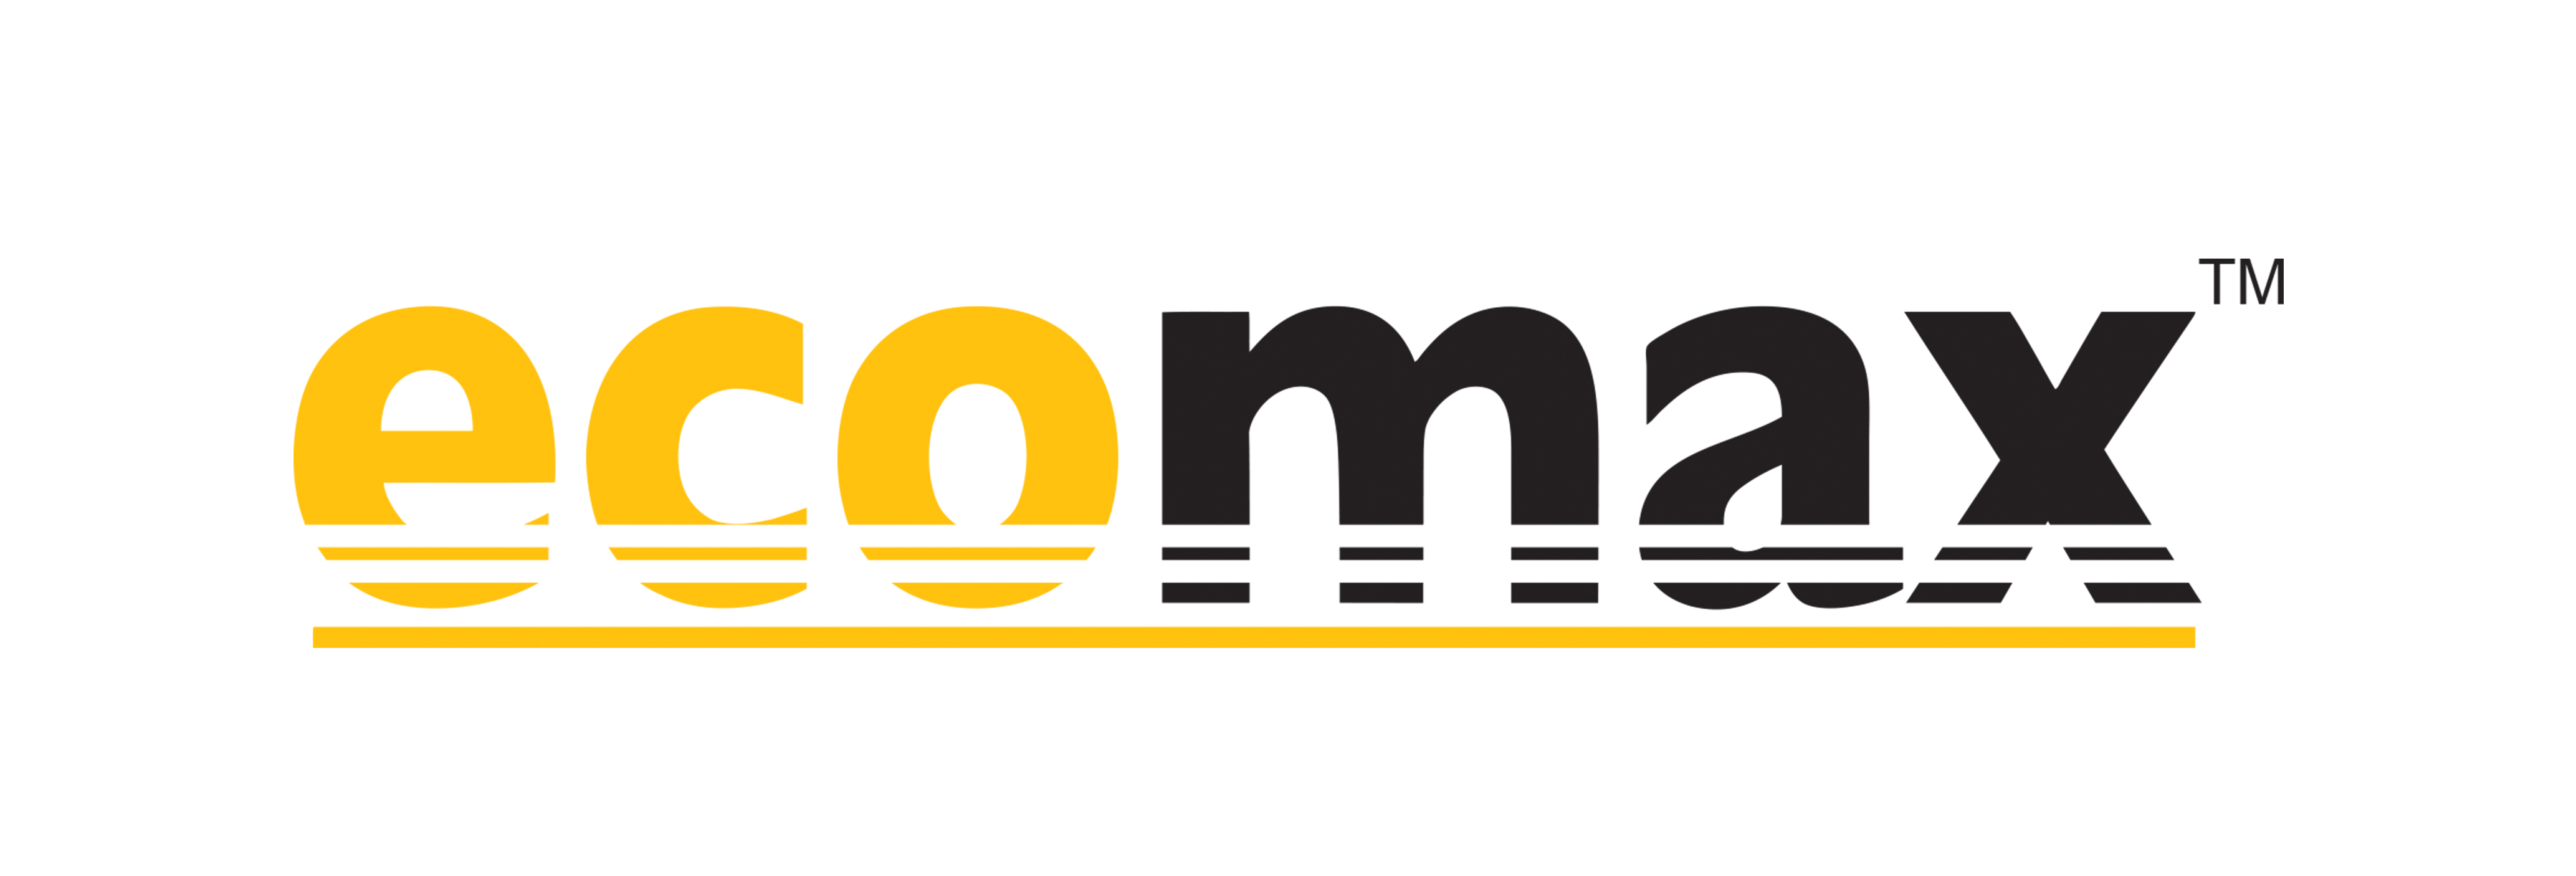 Ecomax-Cooking